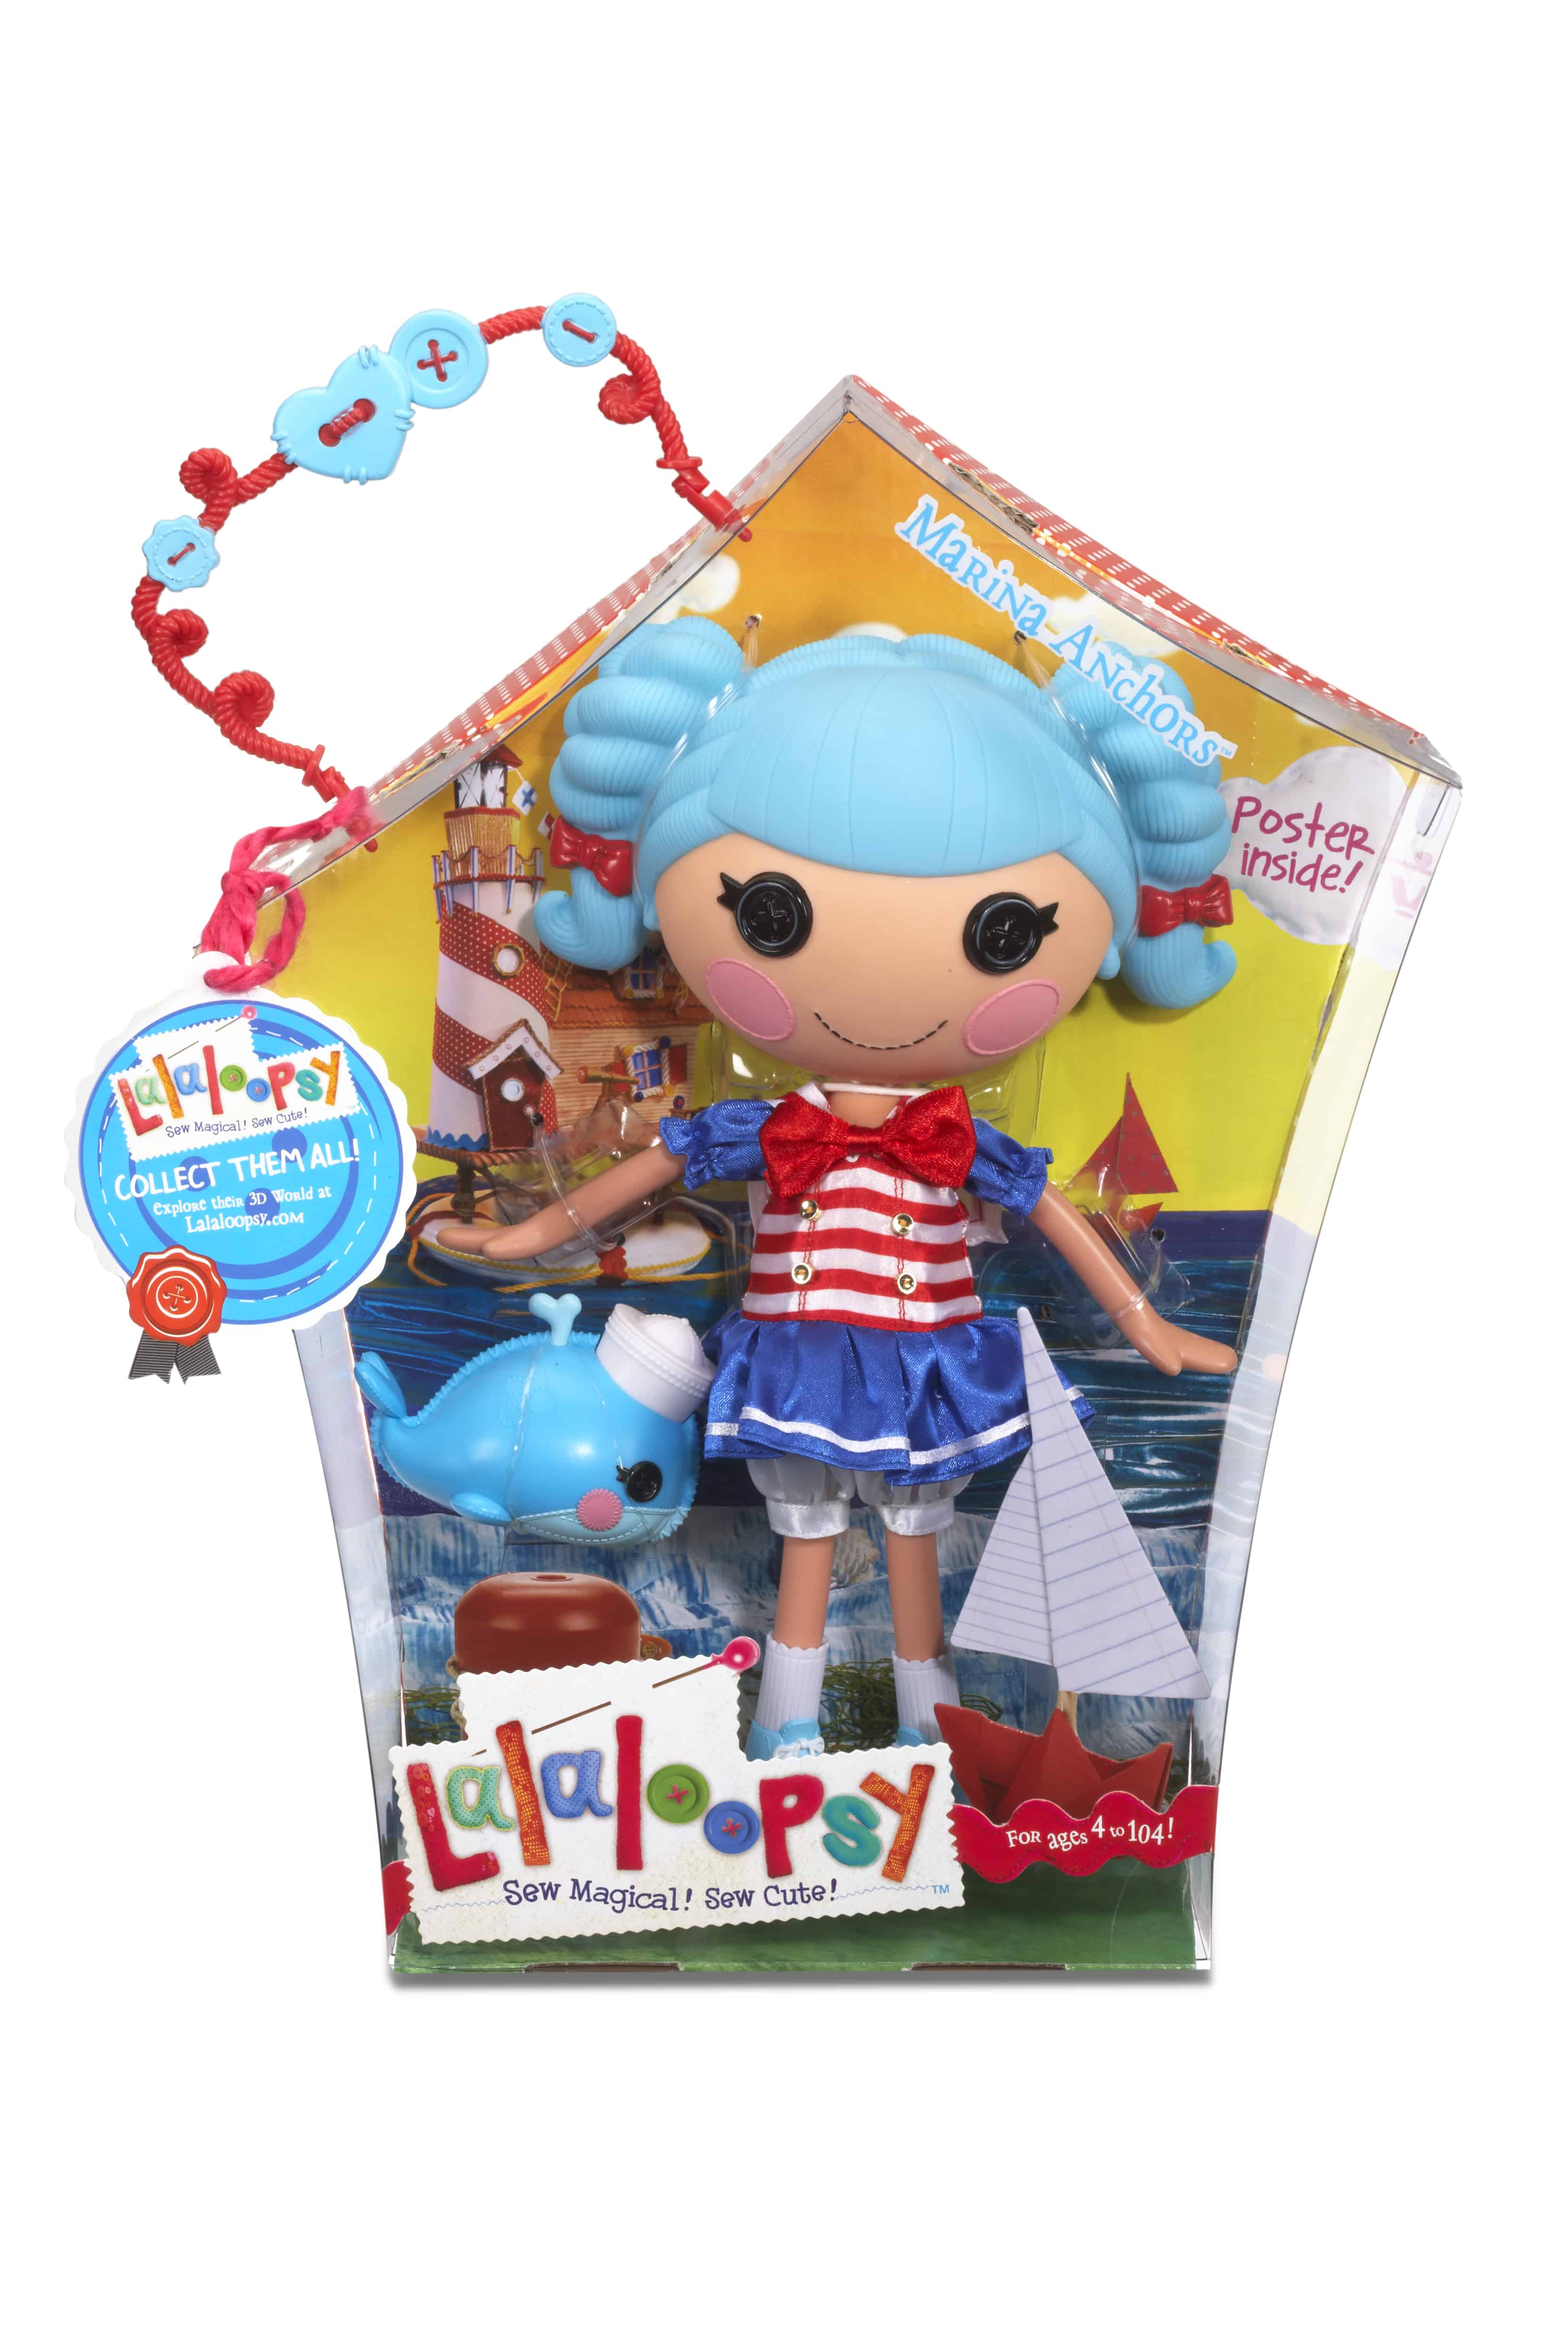 Lalaloopsy doll's are a popular choice this Christmas #giveaway